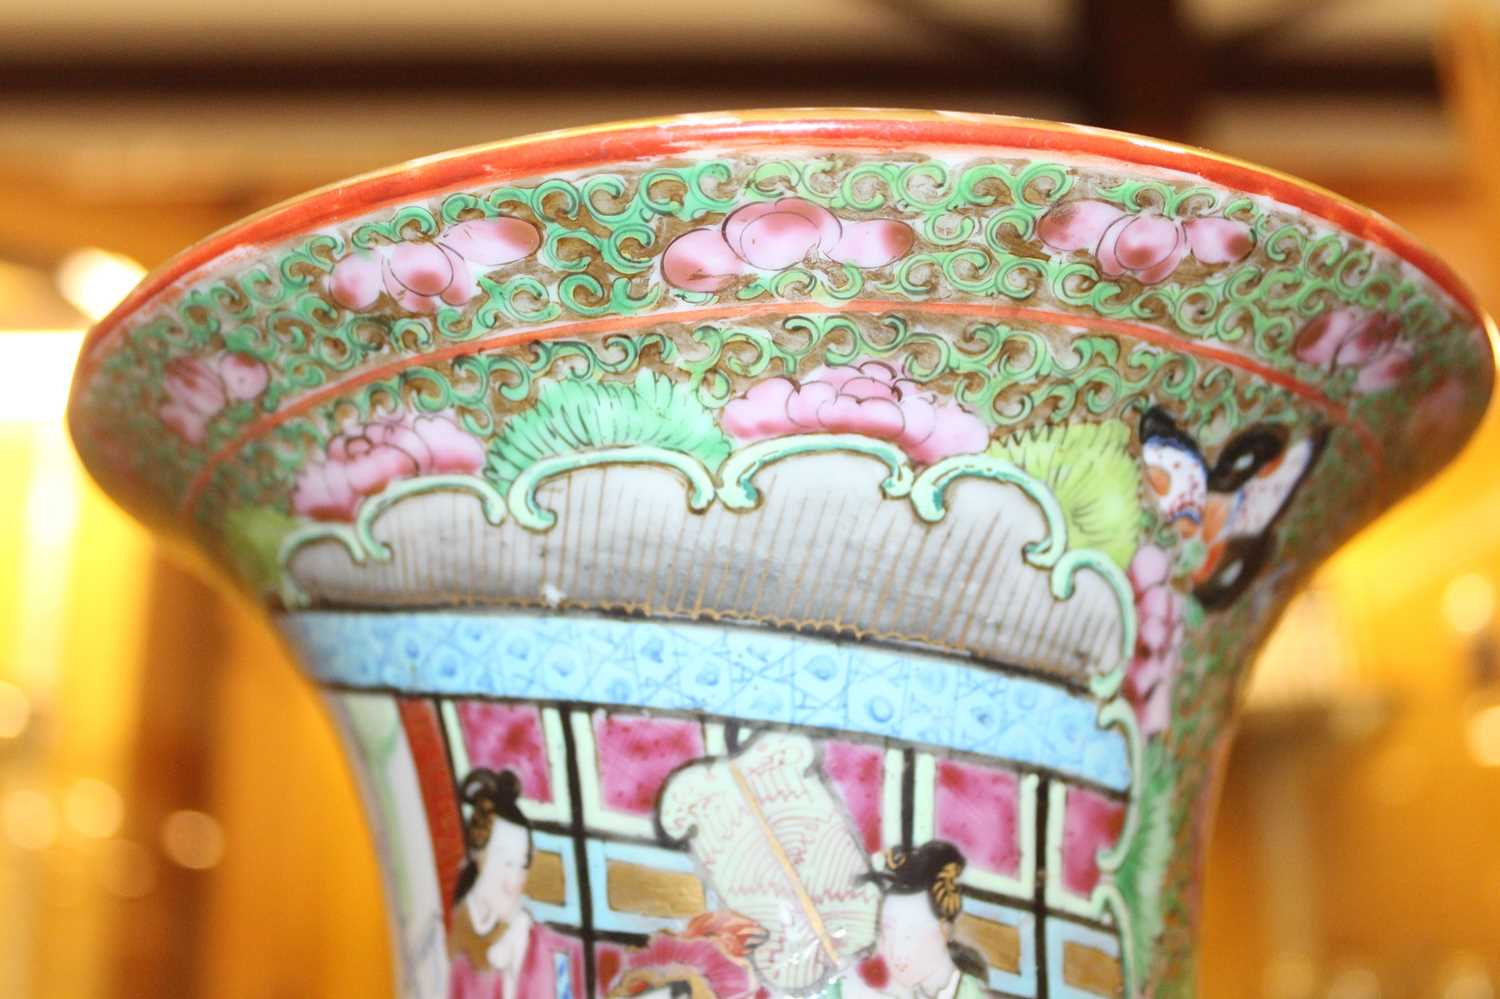 A 19th century Chinese Canton famille rose vase, enamel decorated with ceremonial figure scenes - Image 15 of 18